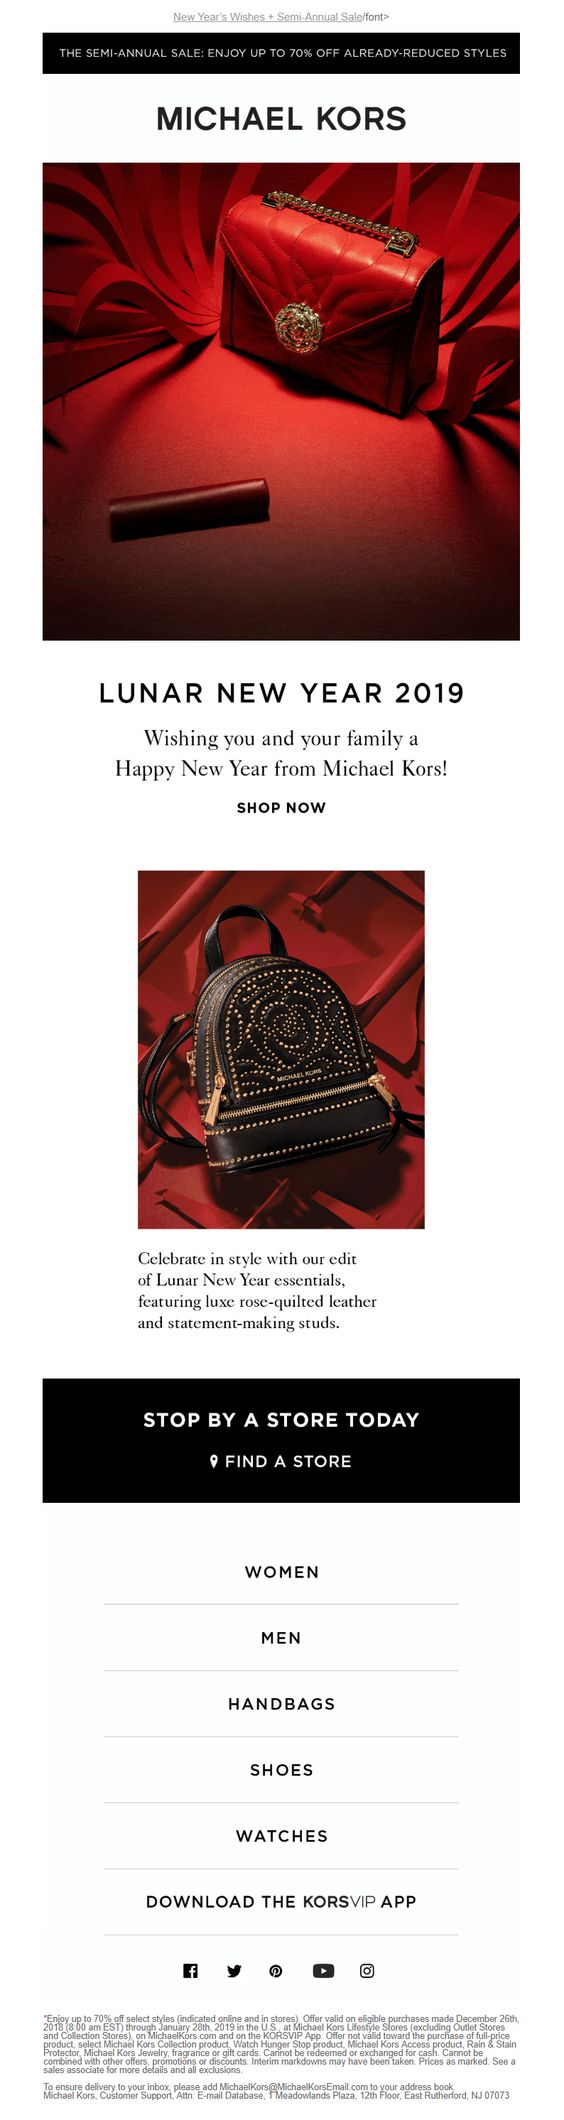 Designer fashion Chinese New Year email example